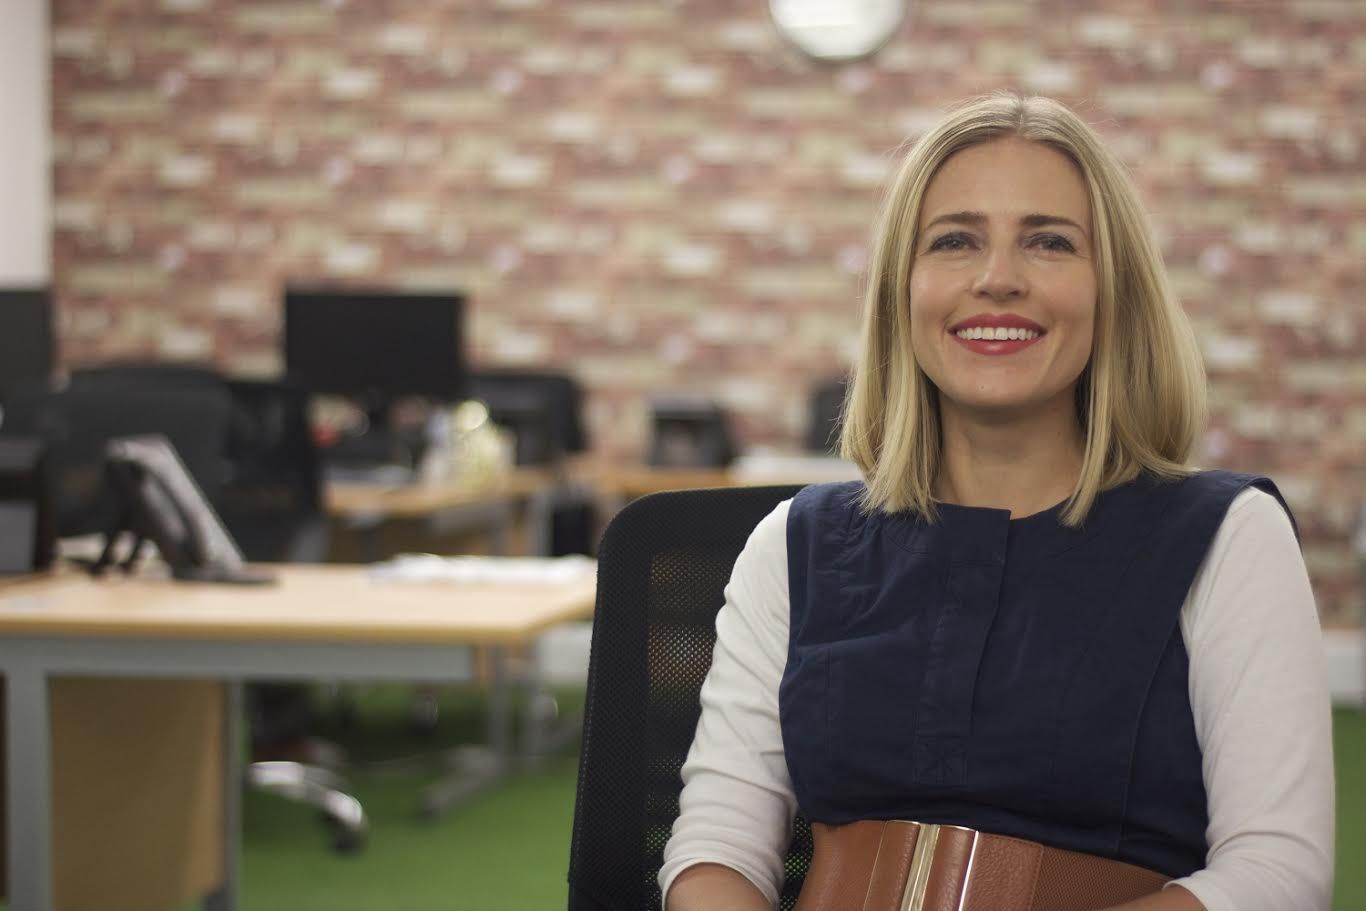 Heather Baker is the founder and CEO of TopLine Comms. Despite her official title as CEO and founder of TopLine Comms, content management remains her first love. In this following interview you'll gain some tips and advice from her and learn 'How She Works'.